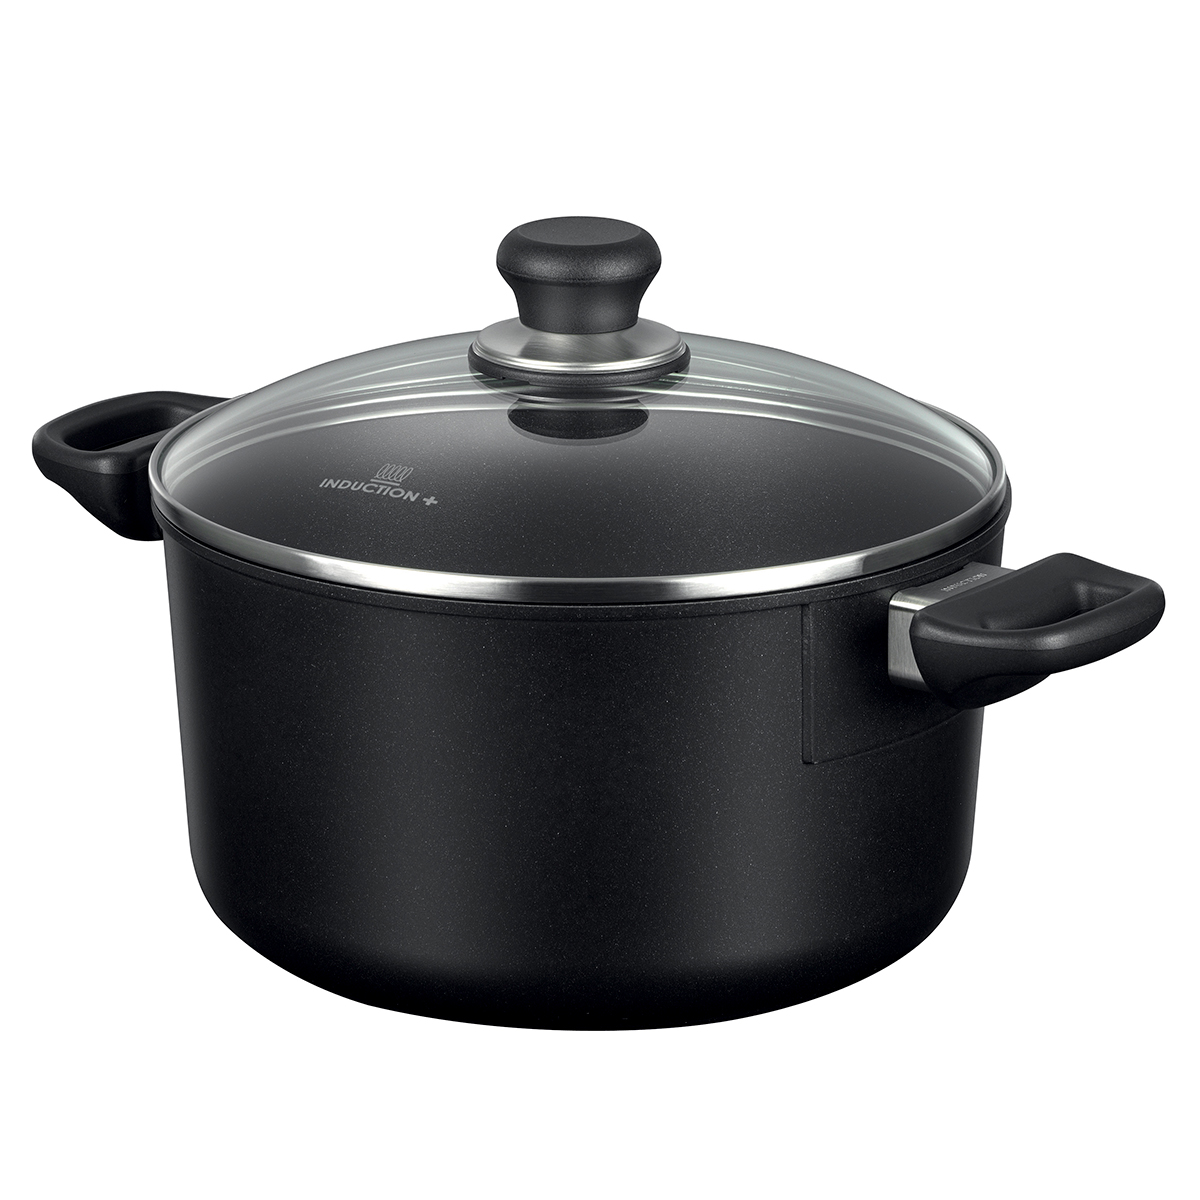 Image of   Scanpan gryde - Induction Plus - 4,8 liter